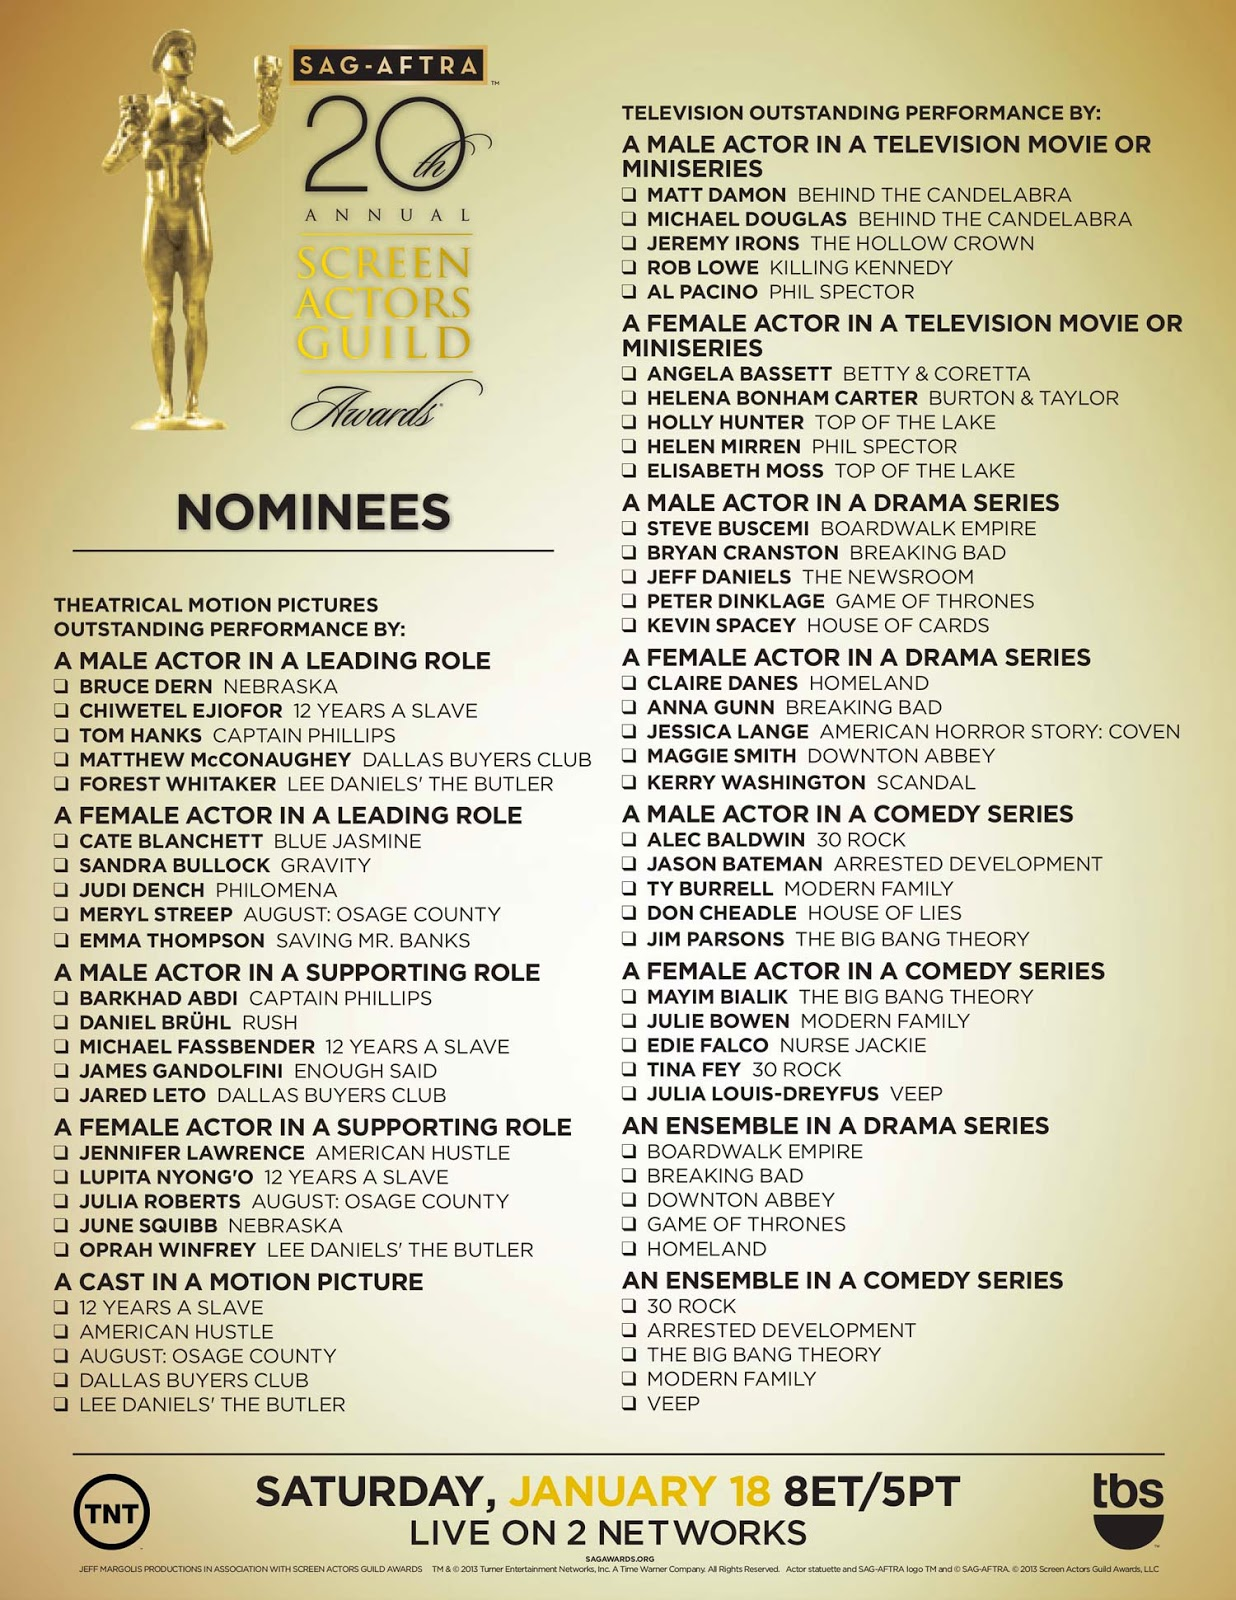 65th Primetime Emmy Awards Printable 2013 likewise 20th Sag Awards Printable Ballot 2014 in addition Martin Scorsese Silence Poster moreover 2017 Oscar Predictions Best Actor December Casey Affleck Denzel Washington Ryan Gosling Tom Hanks Andrew Garfield in addition Oscars 2016 Download Our Printable Movie Checklist PDF. on oscar nominations 2016 predictions